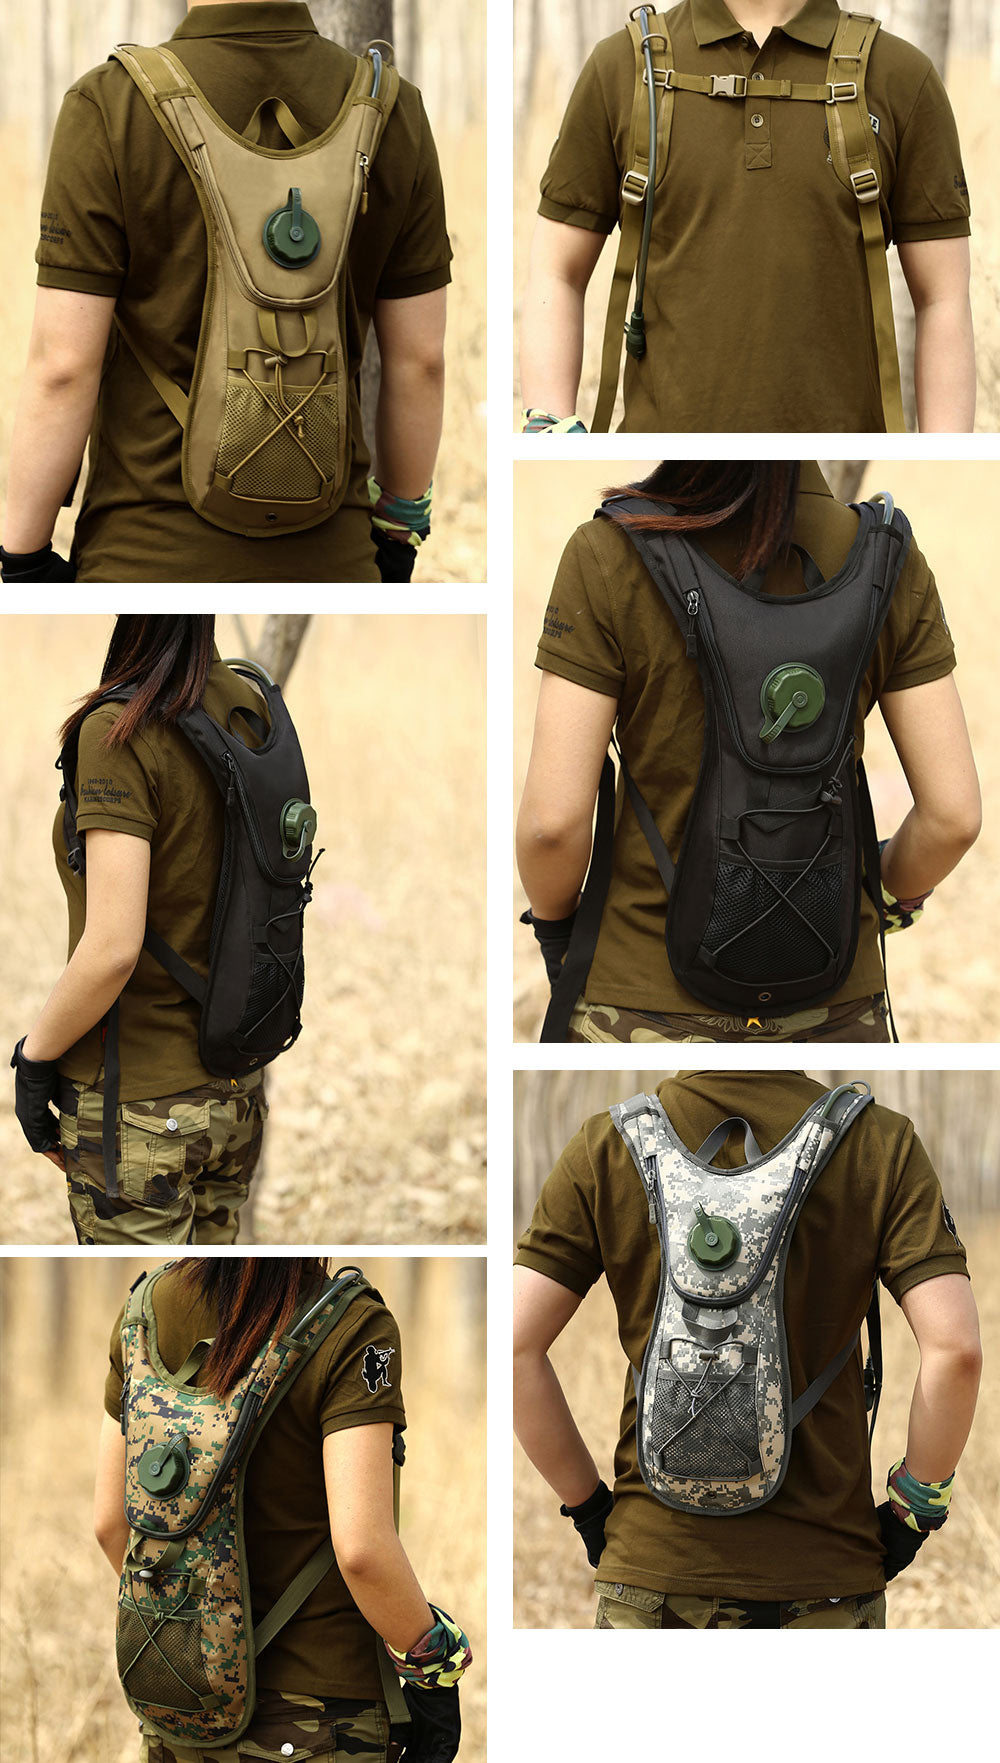 Military Tactical Hydration Backpack Water Bladder Rucksack Portable Hydration For Running Cycling Hiking Trekking - 5 Colors